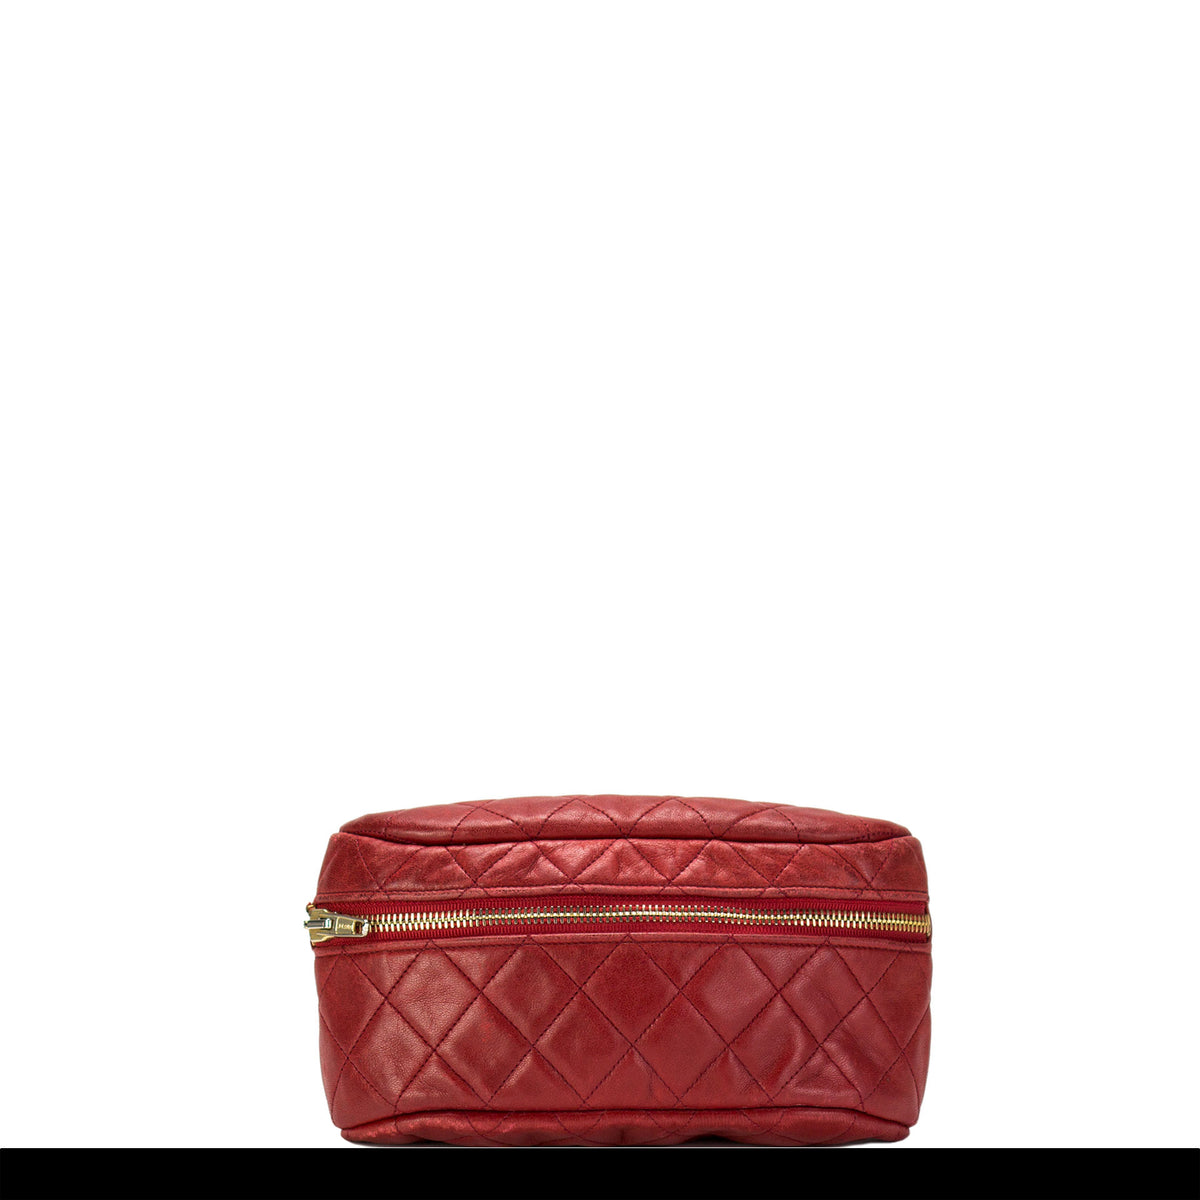 6adbea669c7f Chanel Red Lamb Quilted Medallion Fanny Pack – House of Carver